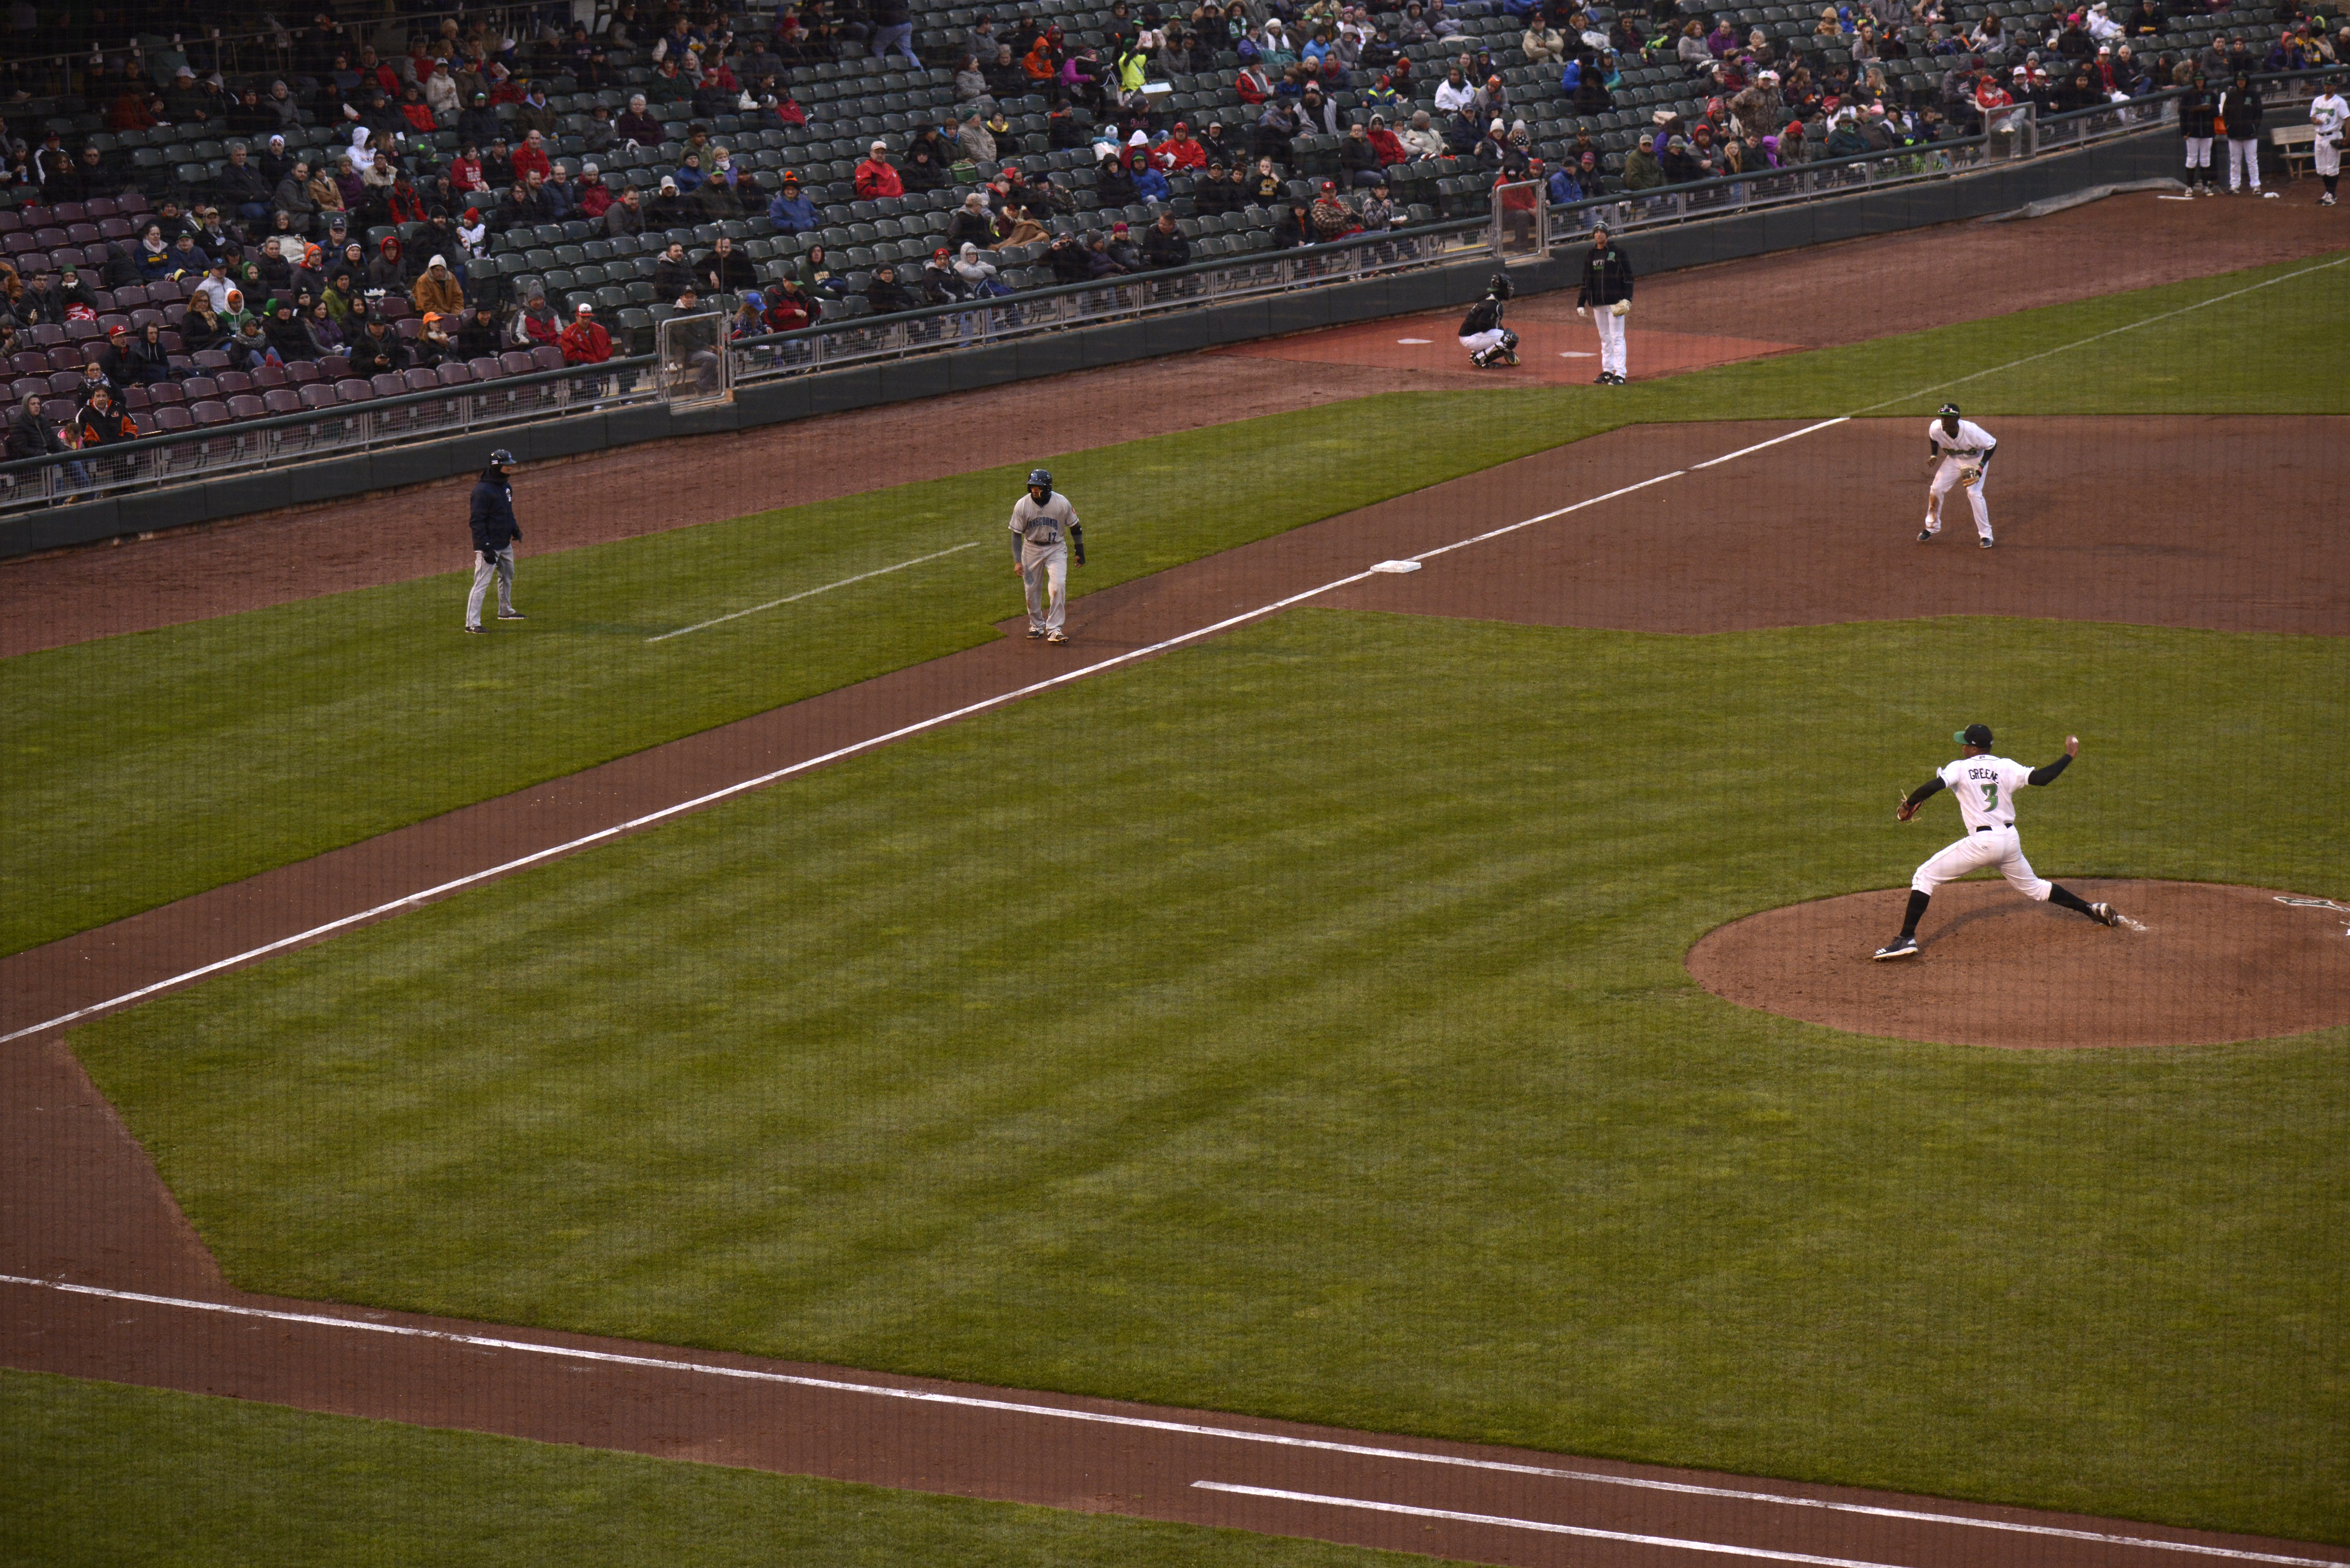 Hunter Greene Pitches for the Dayton Dragons